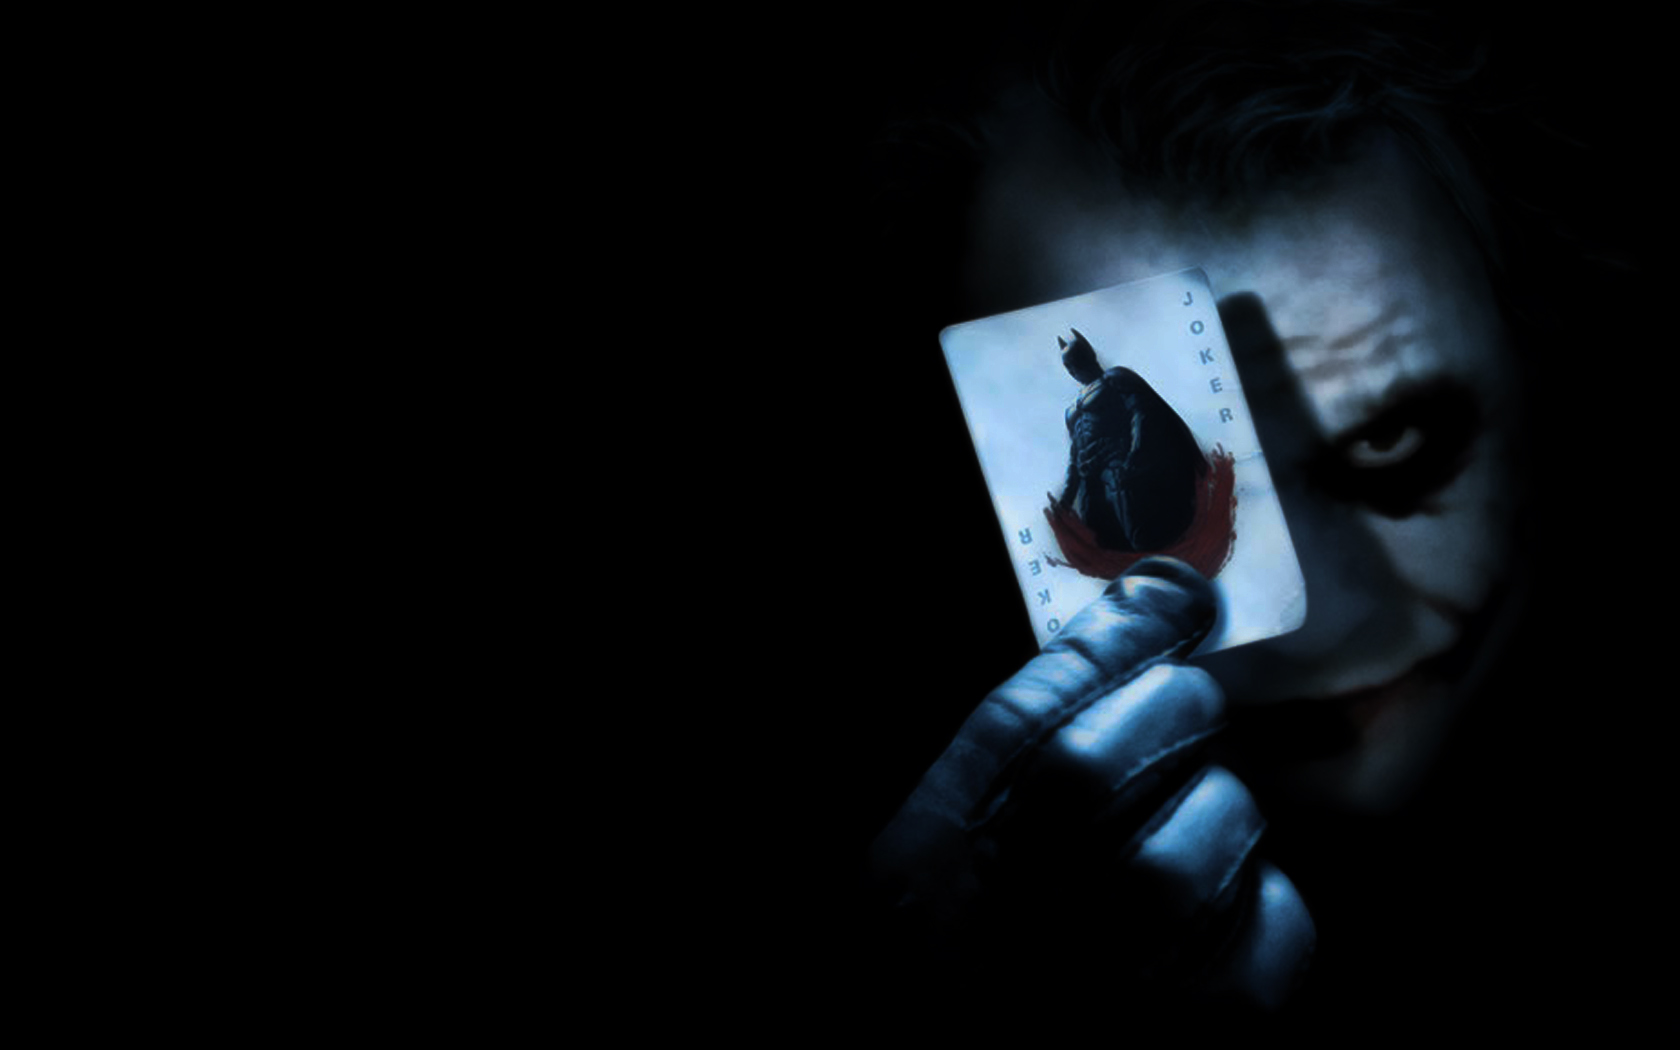 Batman Joker Wallpaper Background Hd